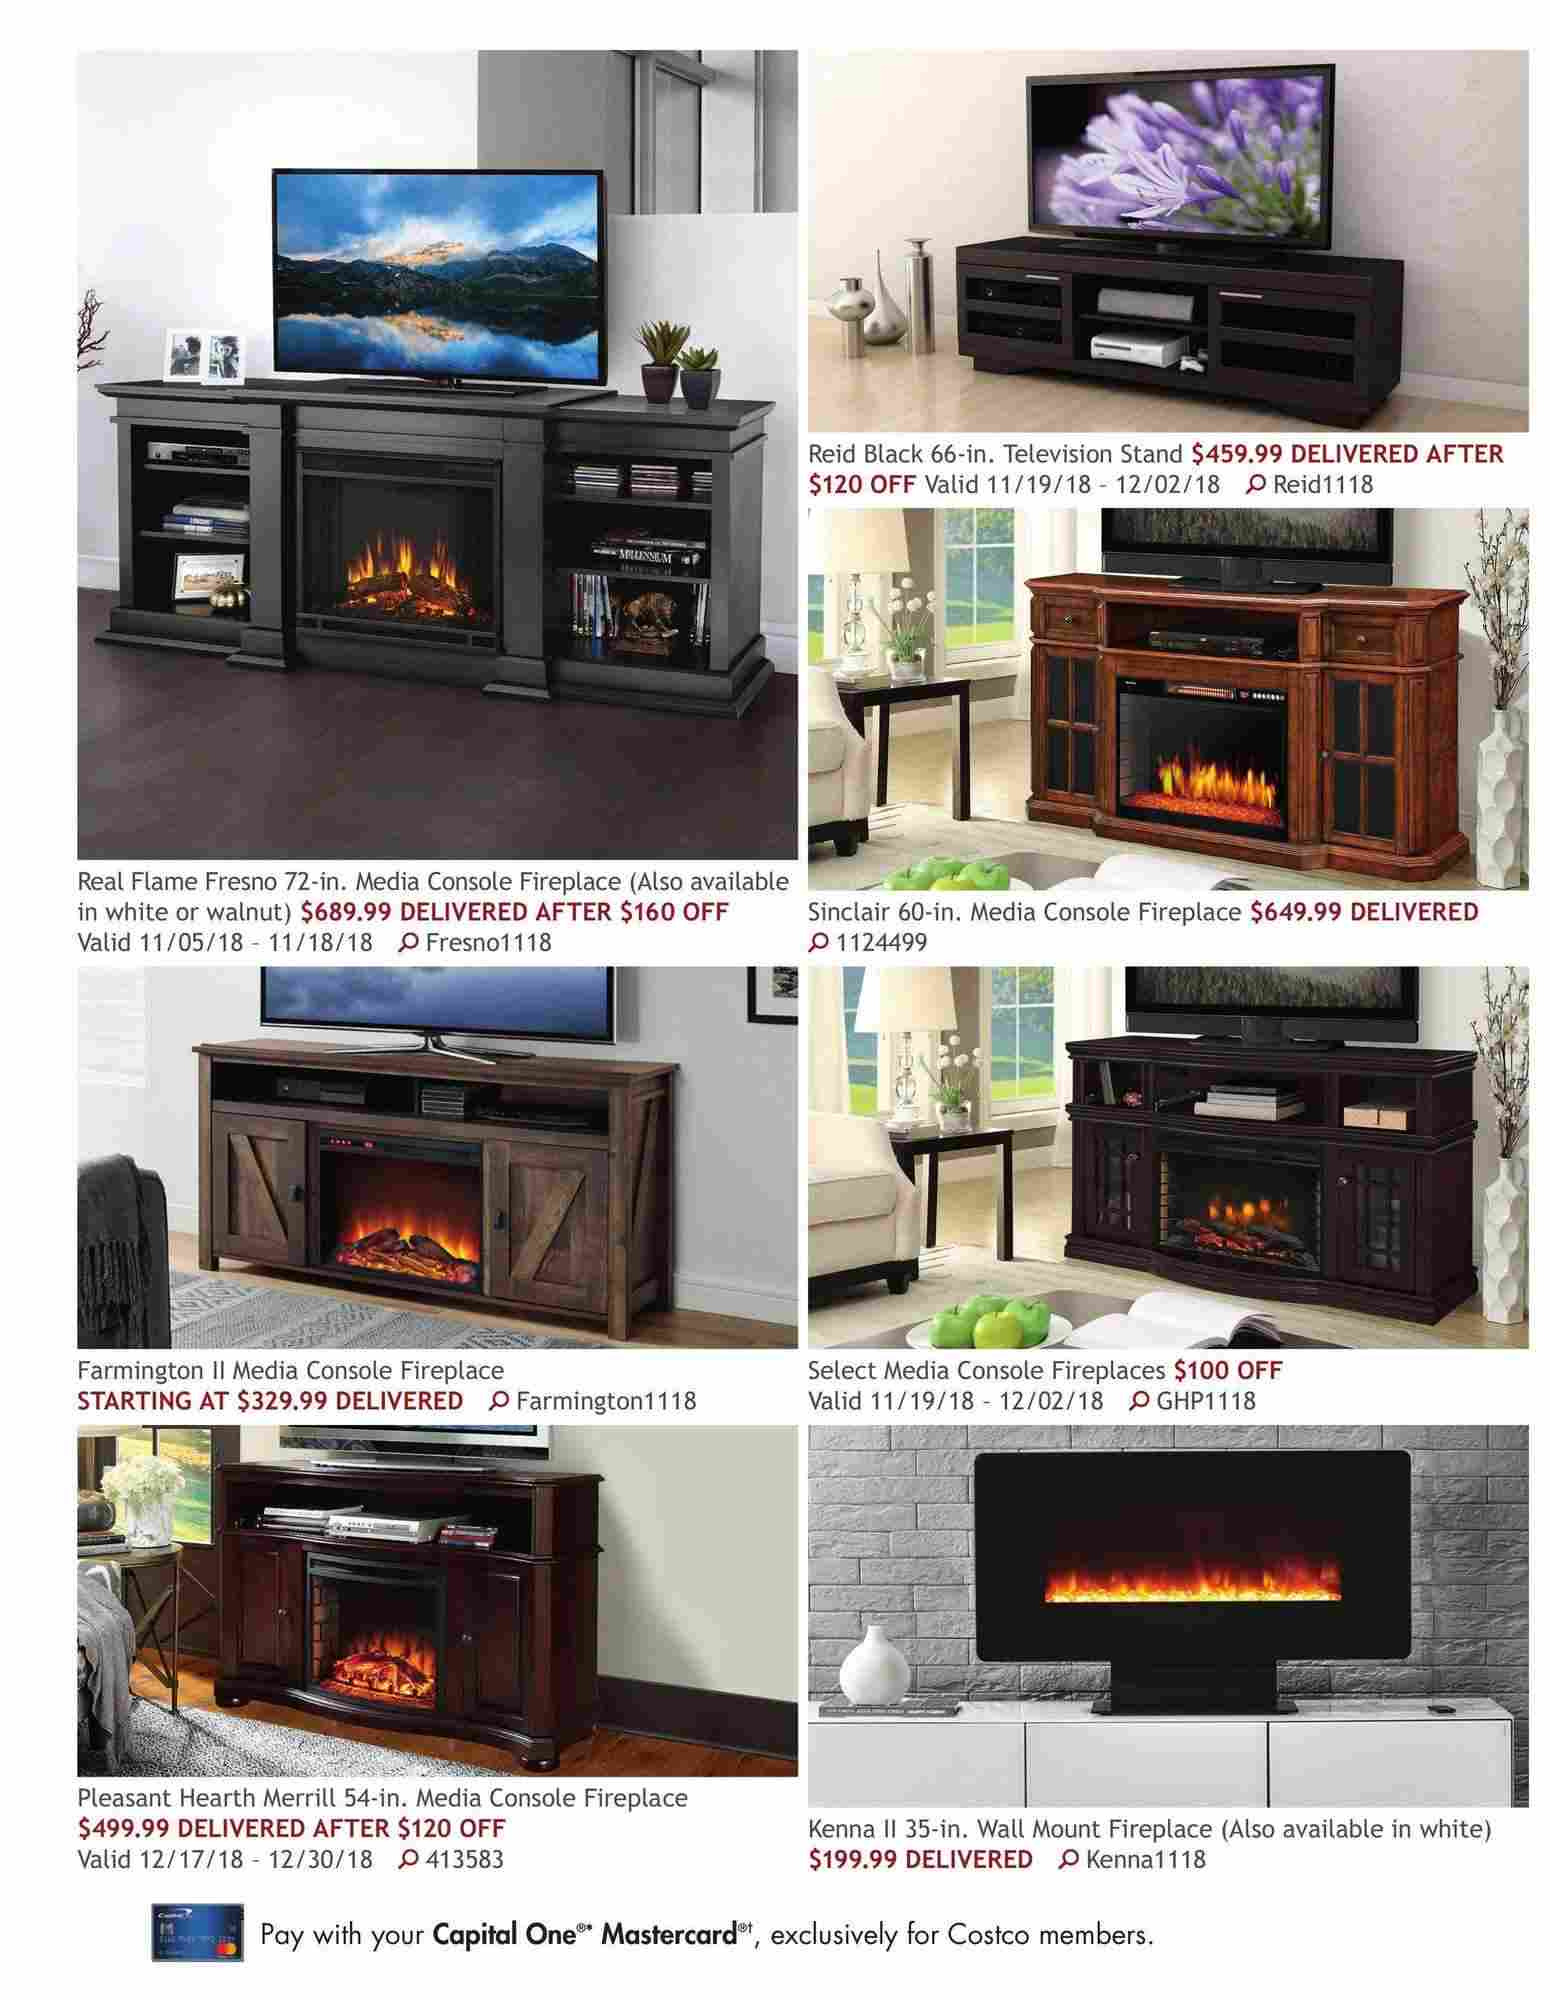 Fireplace Media Console Costco Best Of Costco Flyer On Line November 1 December 31 2018